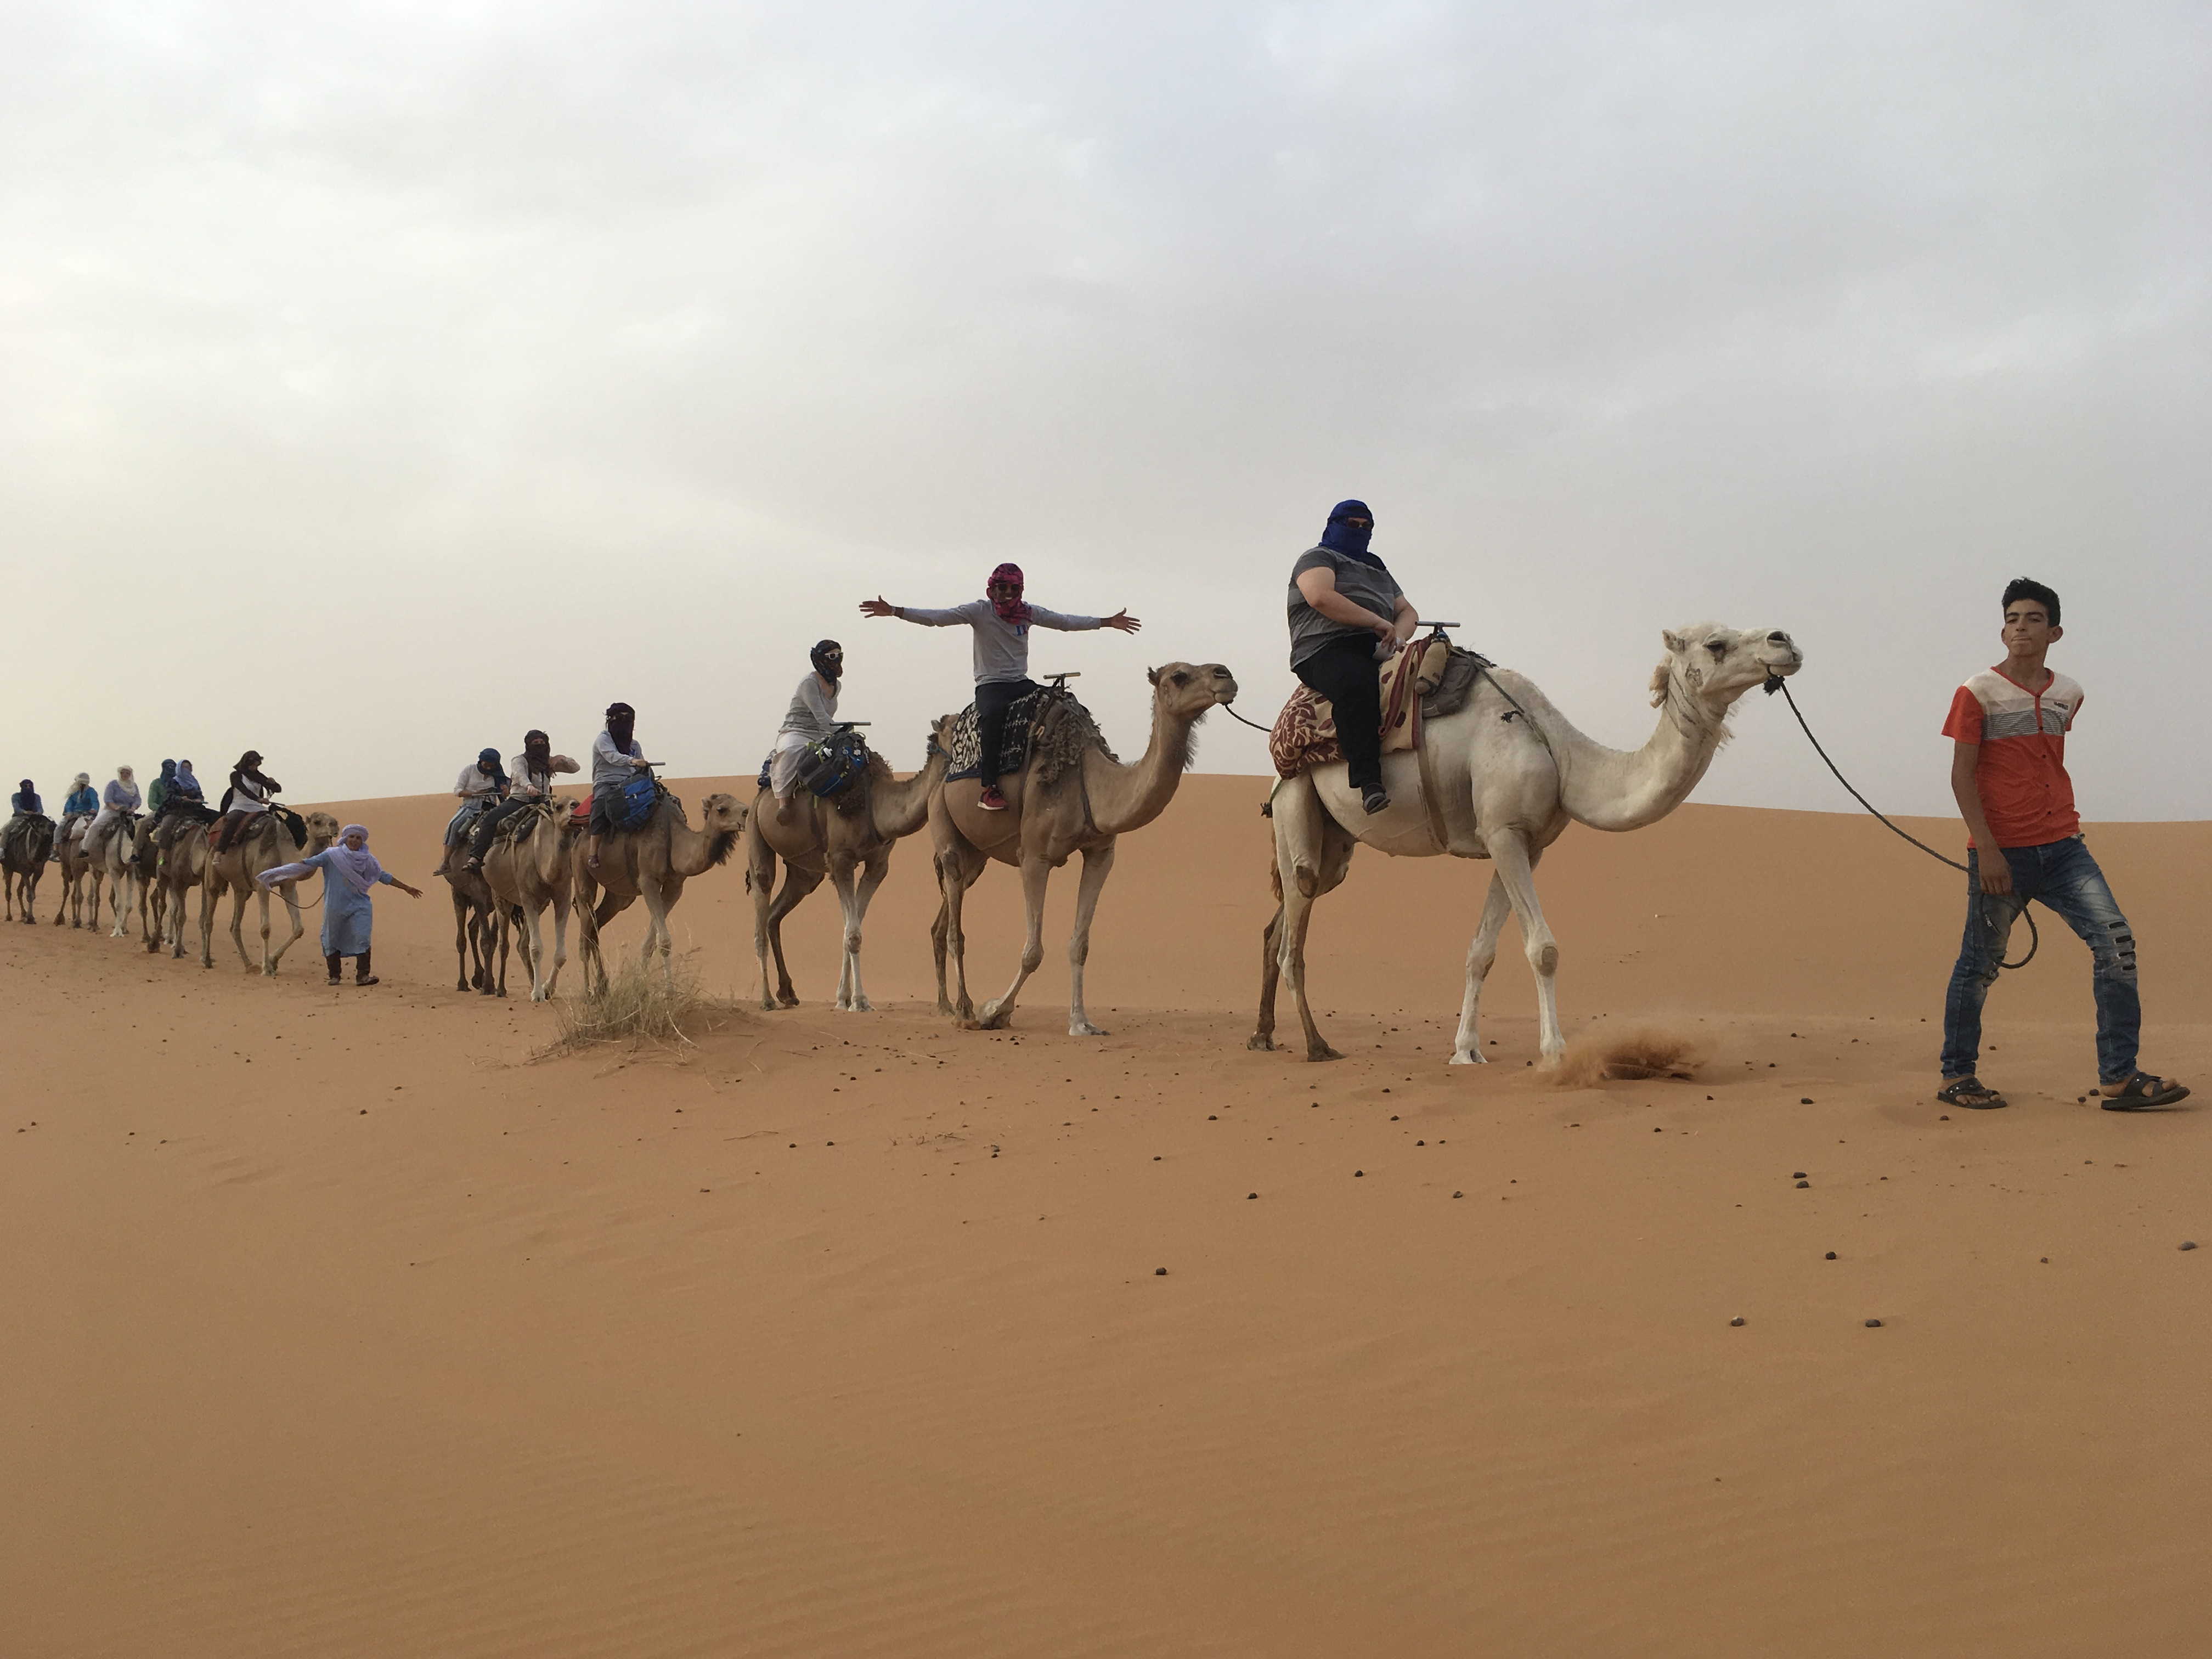 Riding camels in the Sahara Desert.